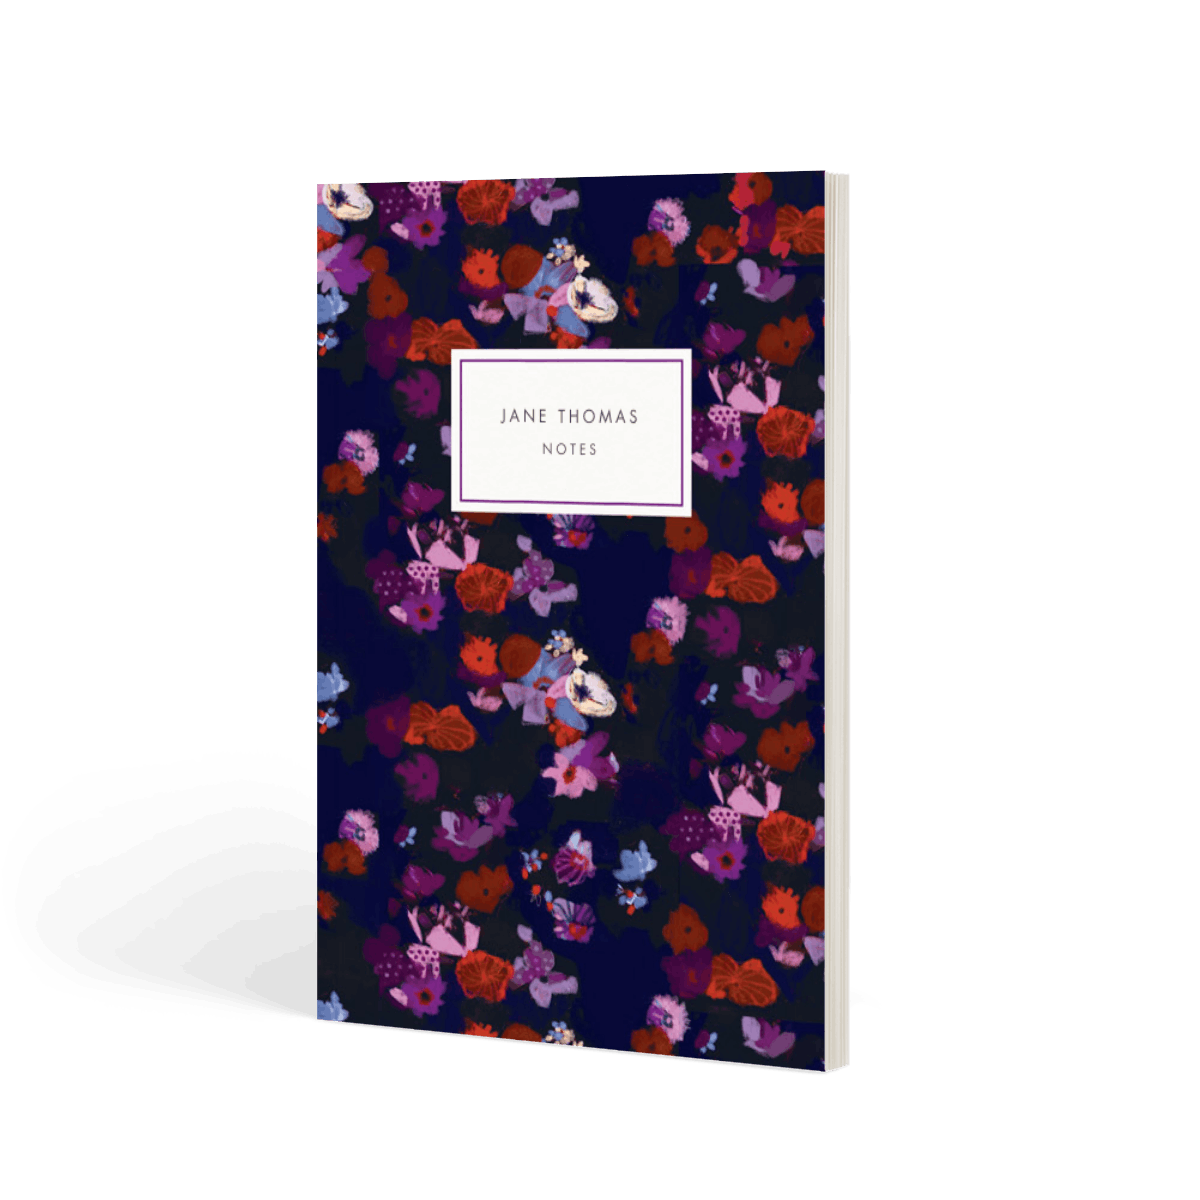 Https%3a%2f%2fwww.papier.com%2fproduct image%2f29699%2f6%2fpurple floral 7488 front 1534505947.png?ixlib=rb 1.1